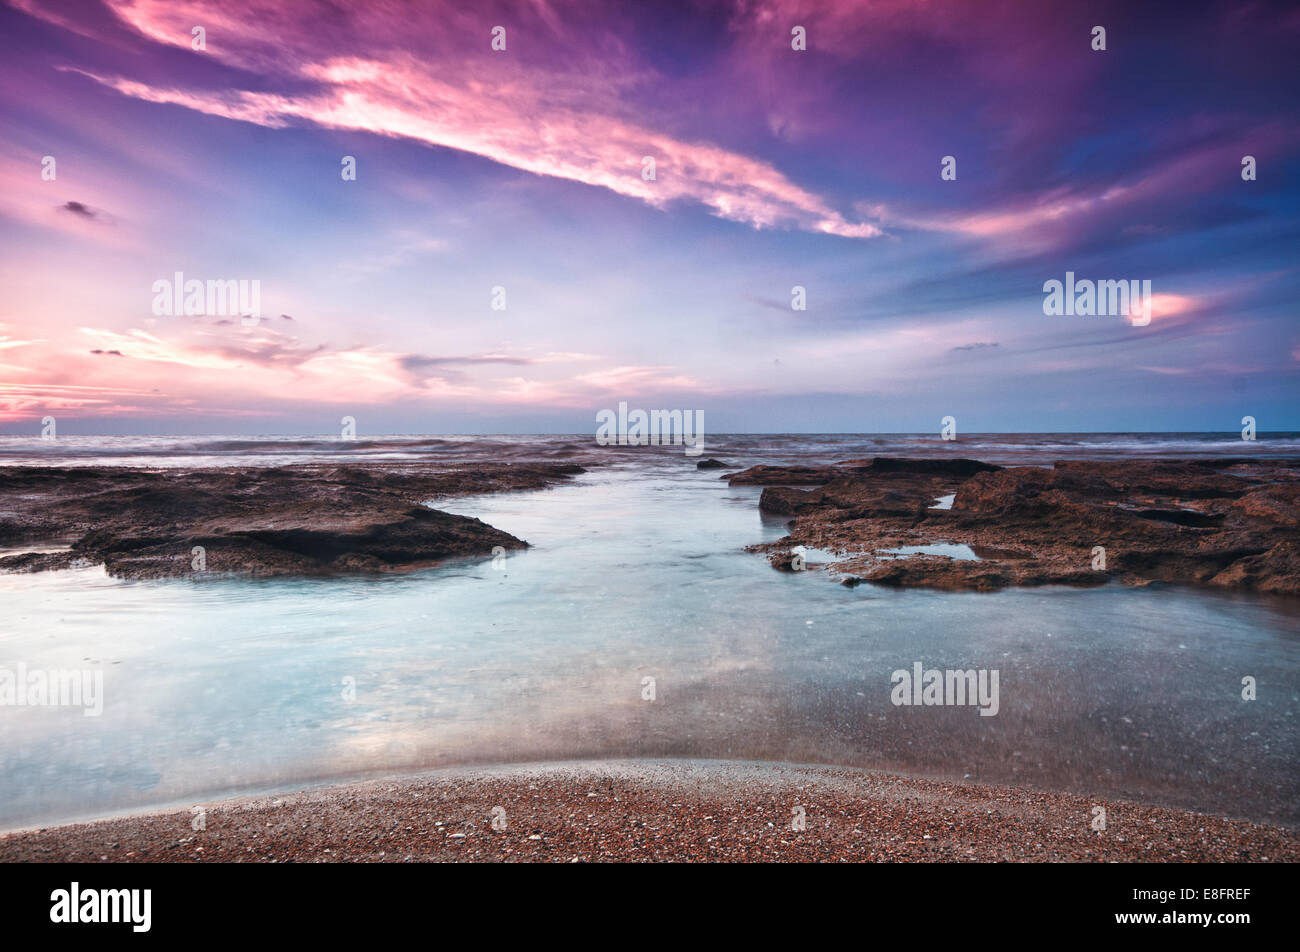 Israel, Tel Aviv District, Tel Aviv, Sunset on Beach - Stock Image